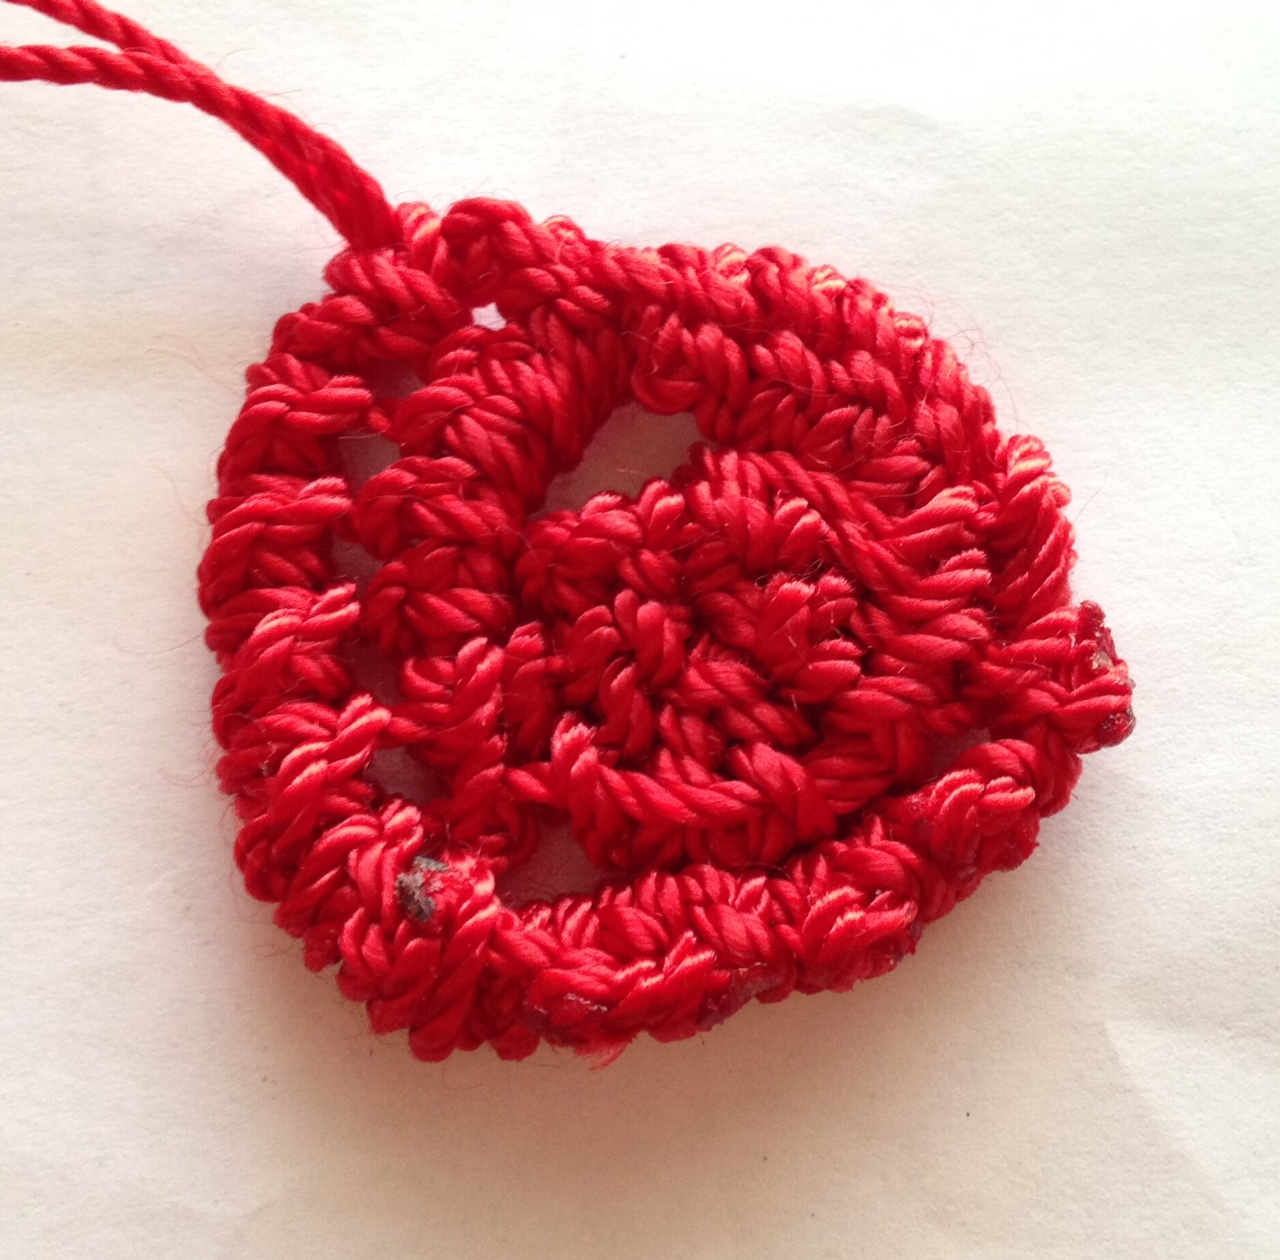 macrame heart tutorial